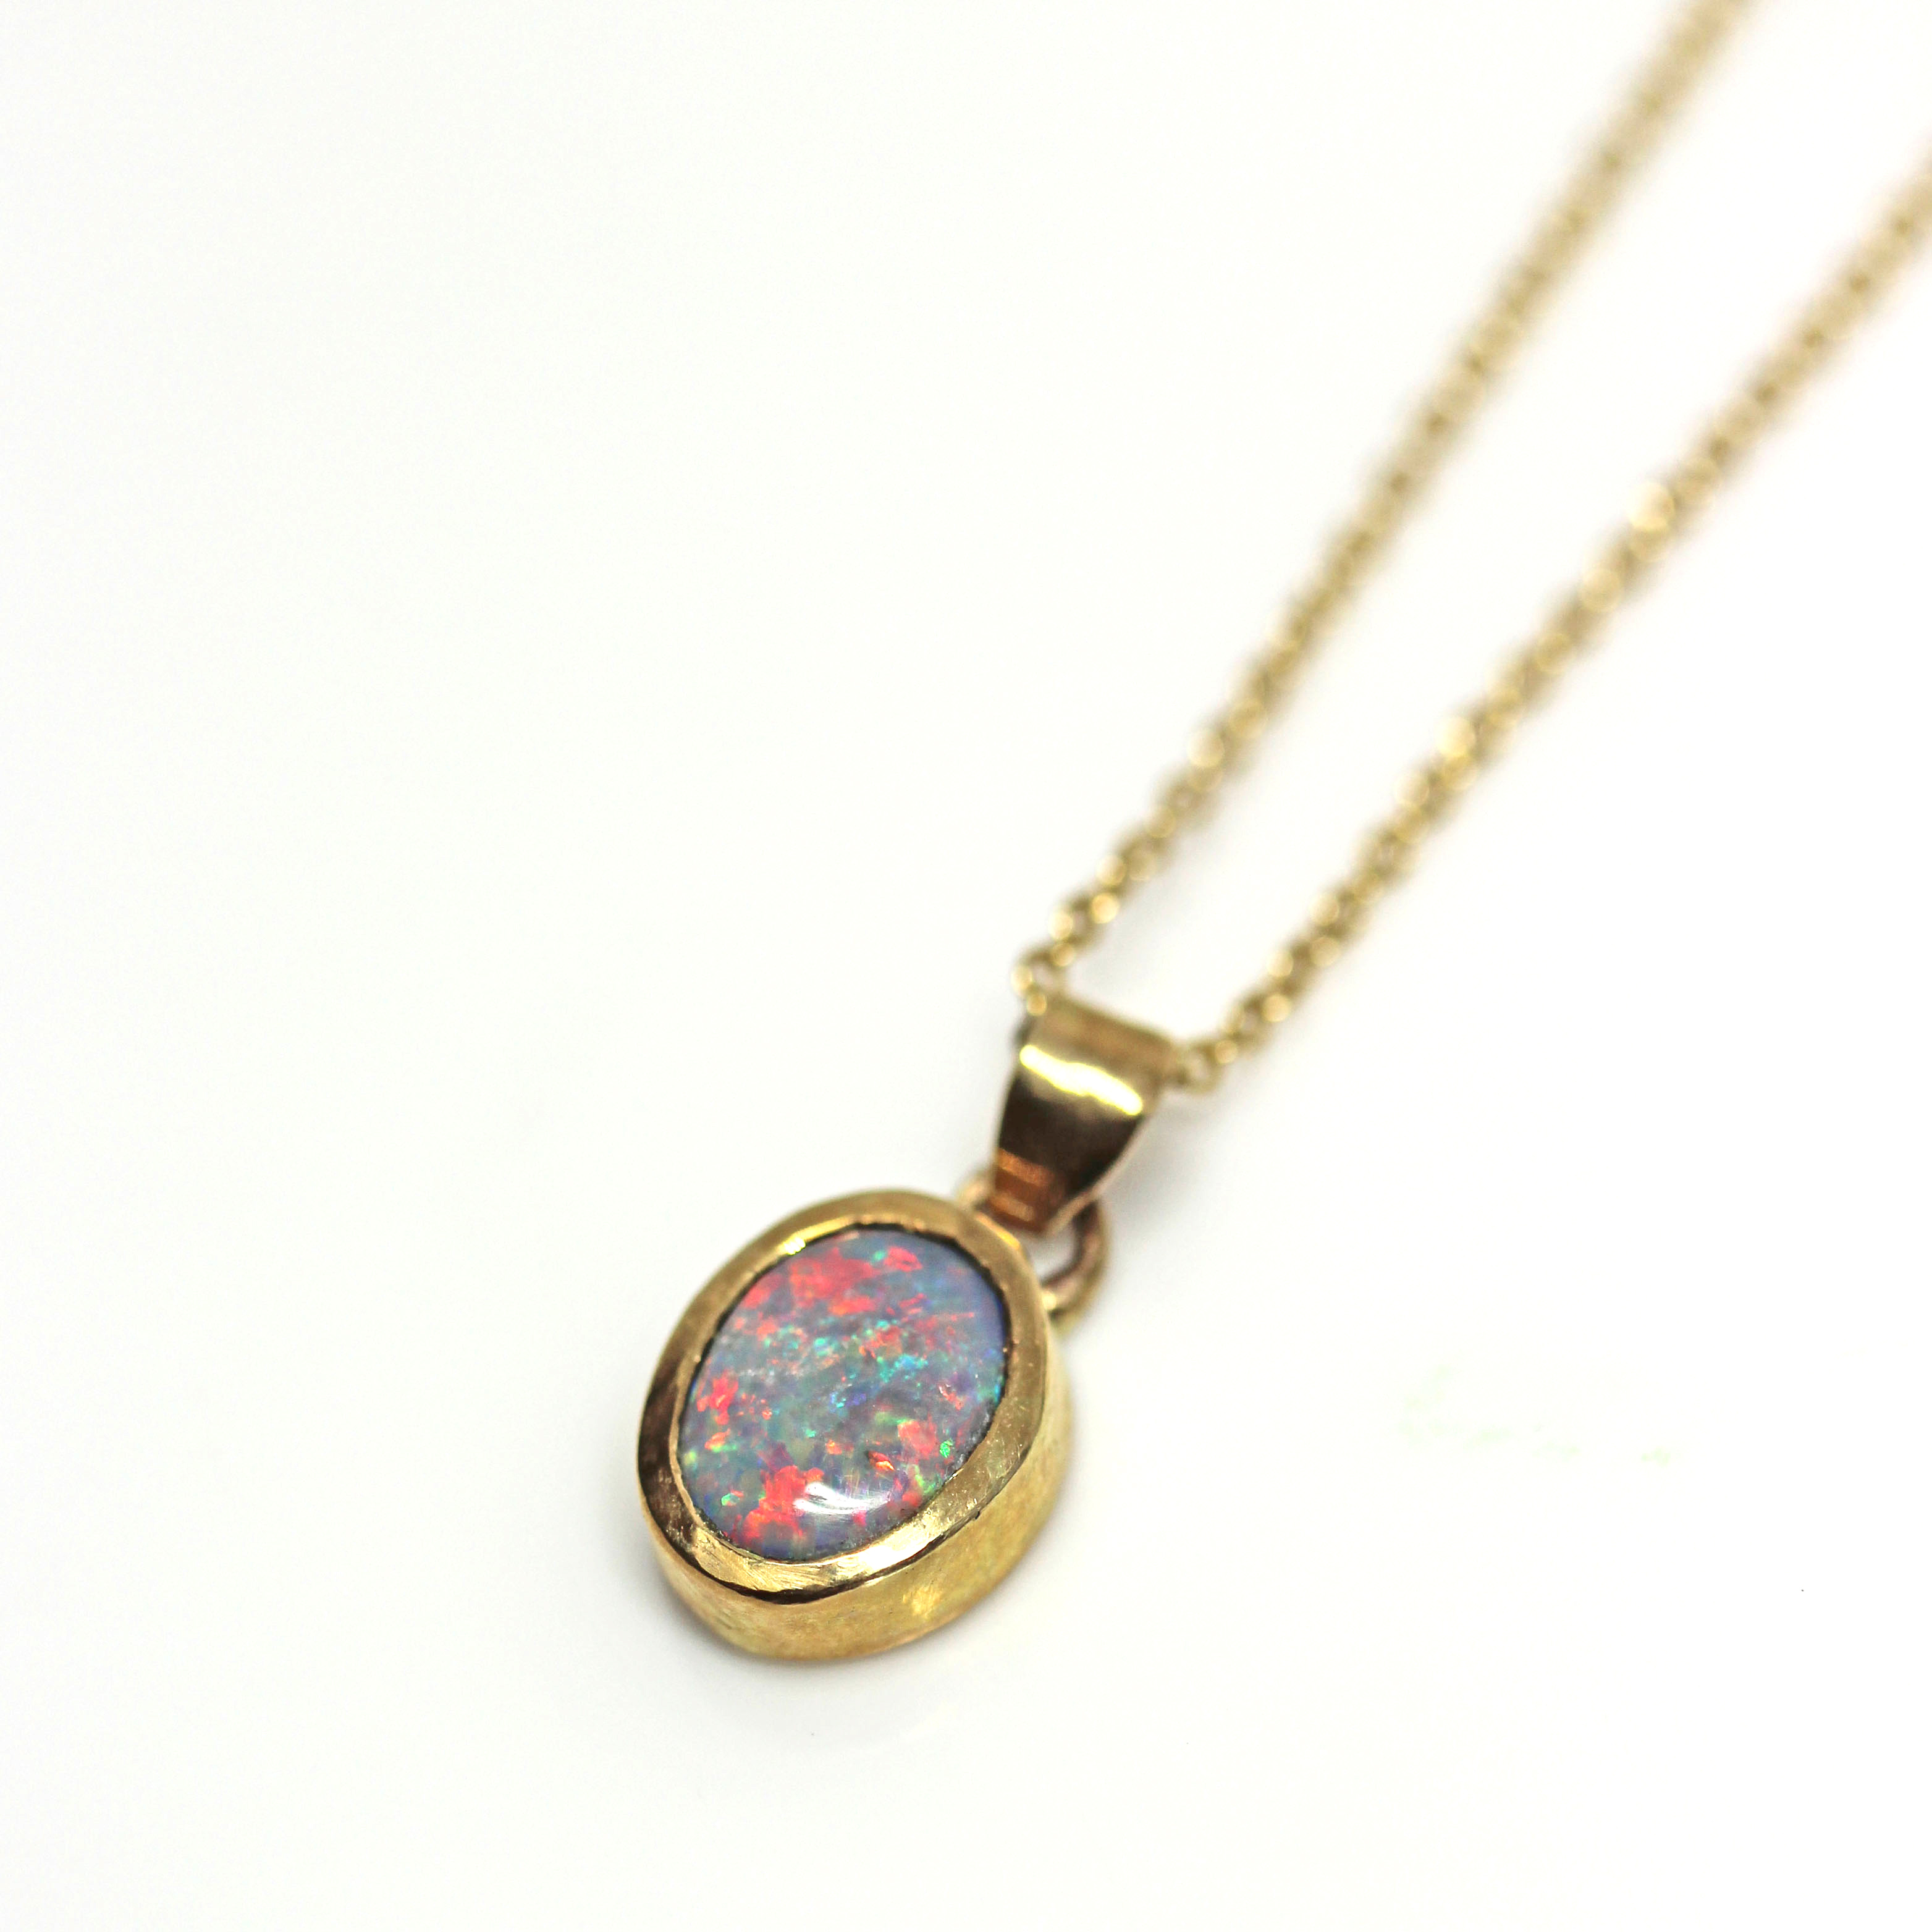 Opal necklace in 18ct yellow gold